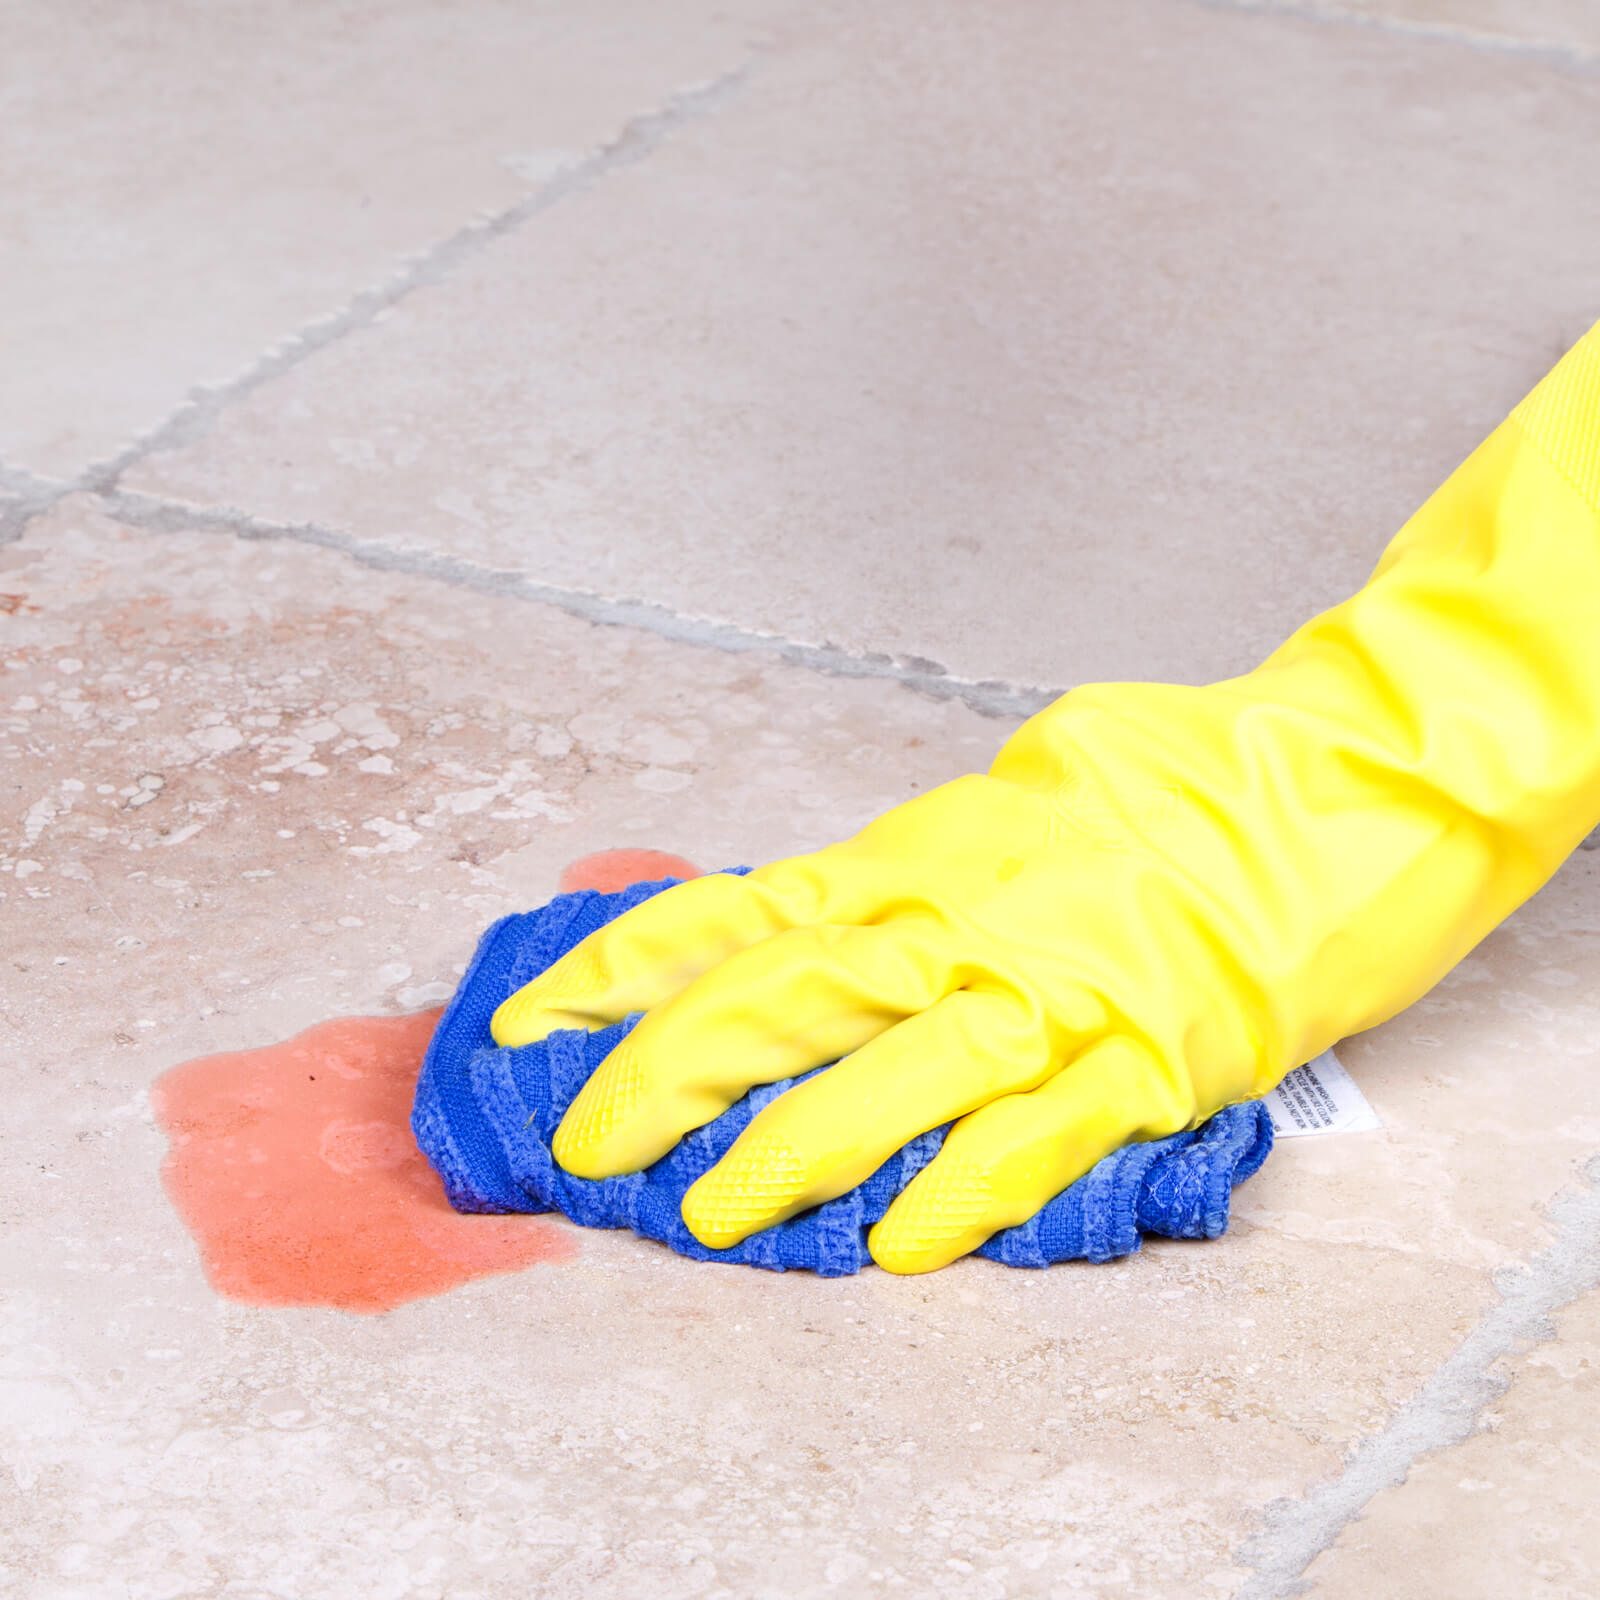 Tile cleaning | McCool's Flooring